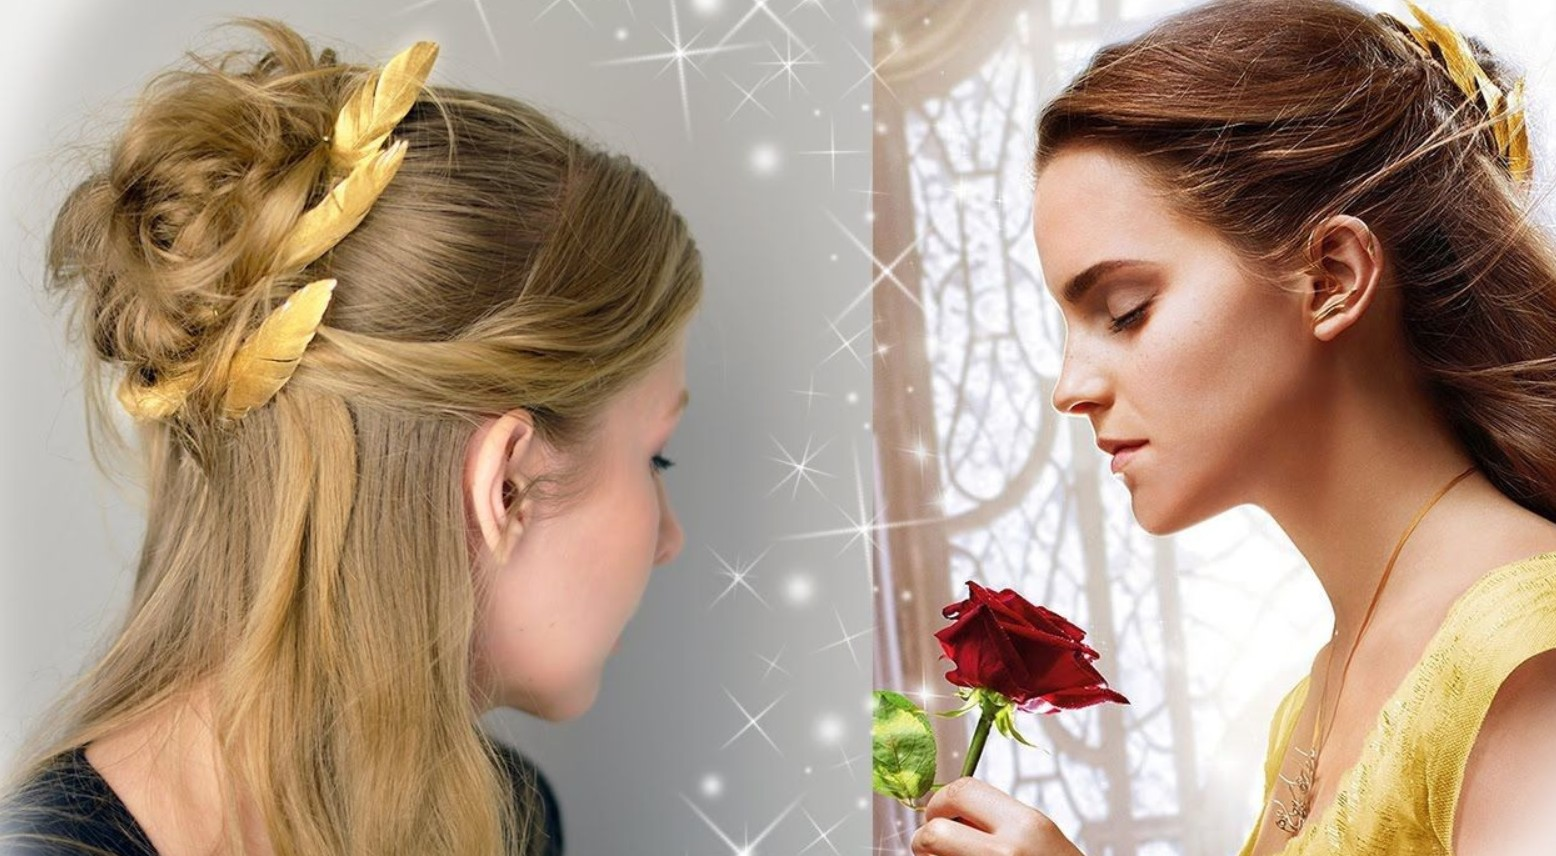 Princess Belle hairstyle